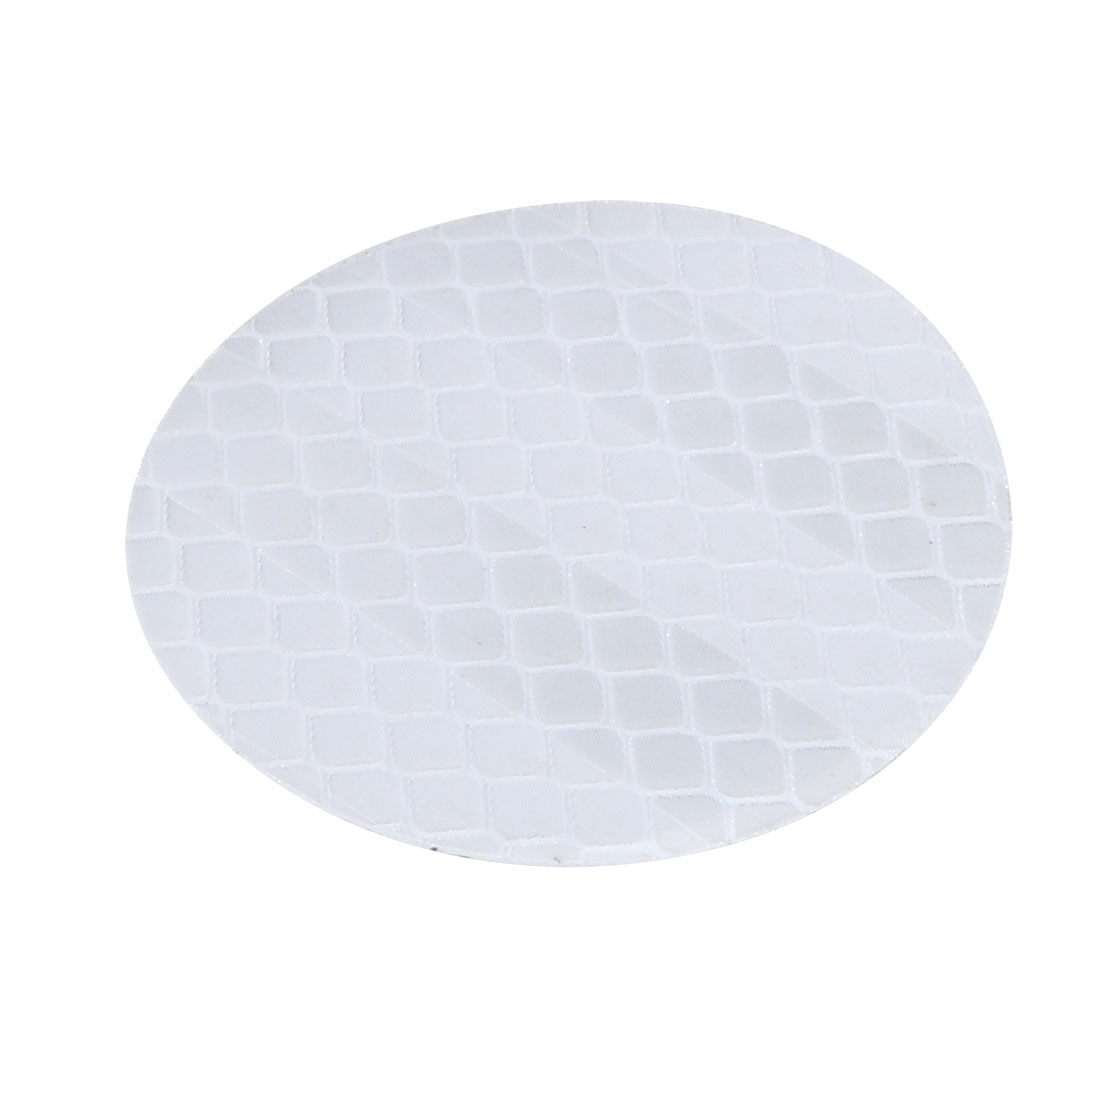 2pcs Round Reflective Warning Tape Strip Sticker White 45mm Diameter